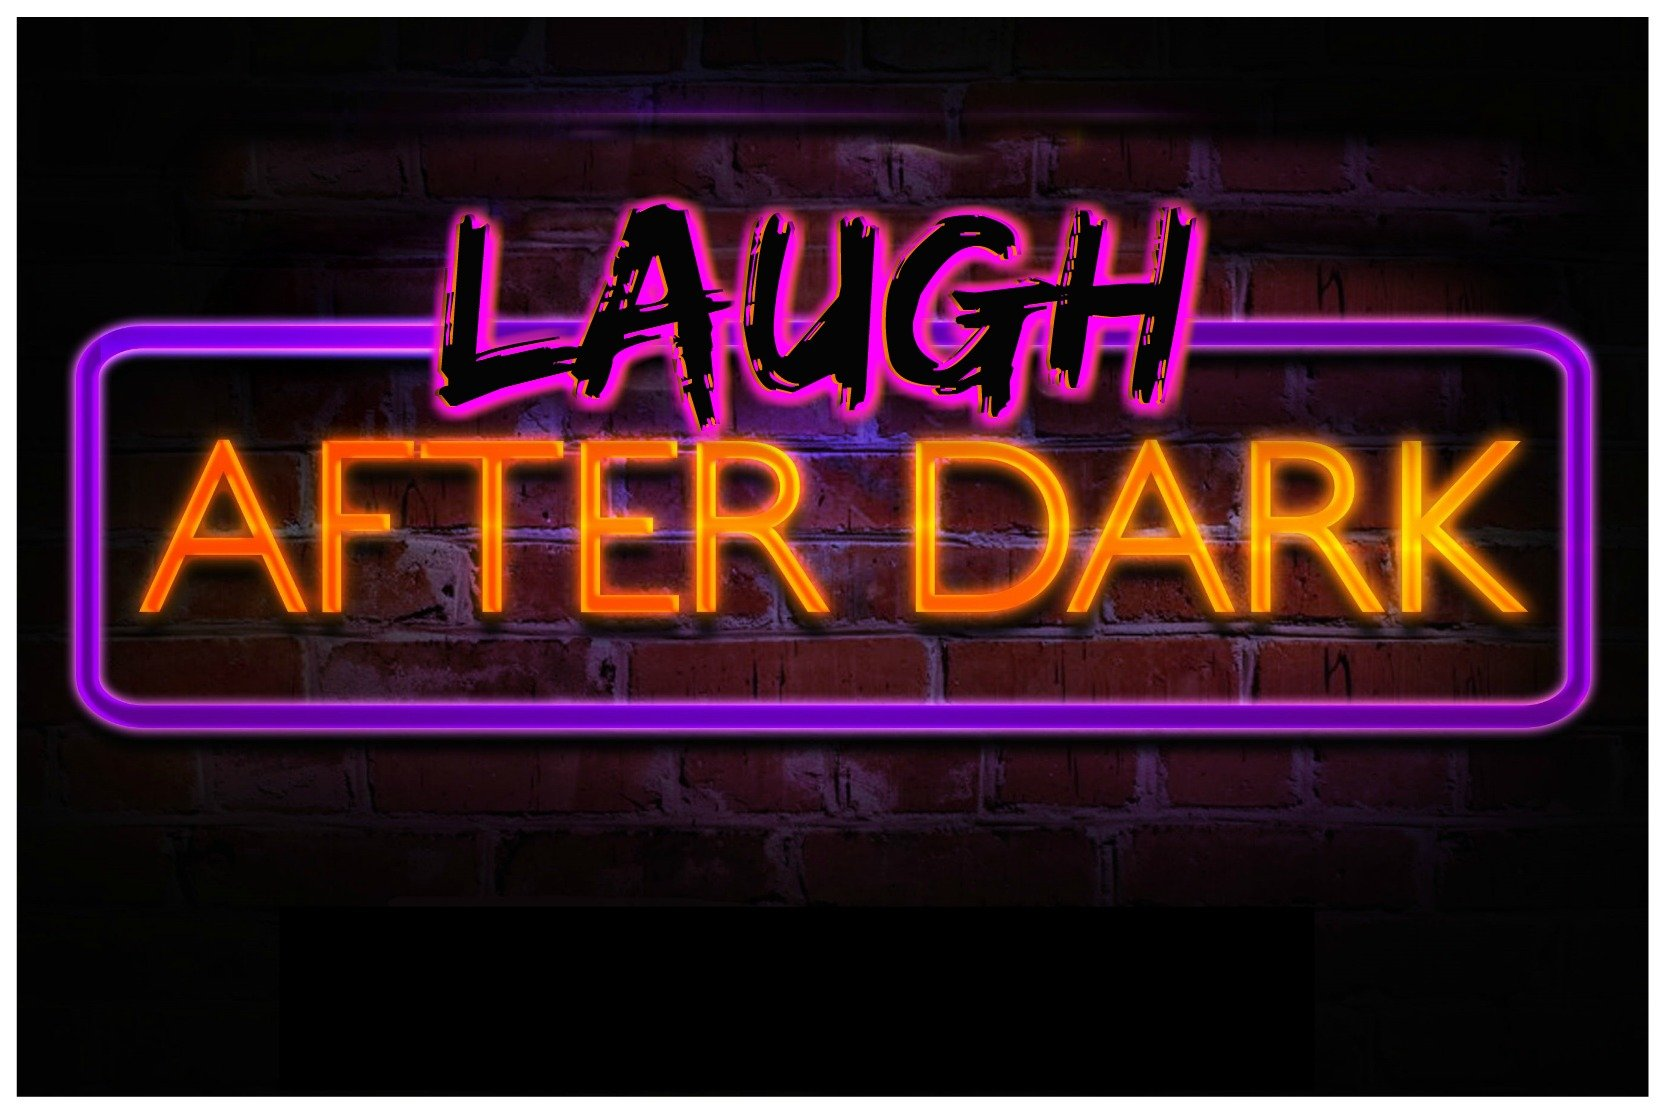 After Drk Ticket Lad 01 Laugh After Dark Live Comedy Show 2018 04 13 2018 04 13